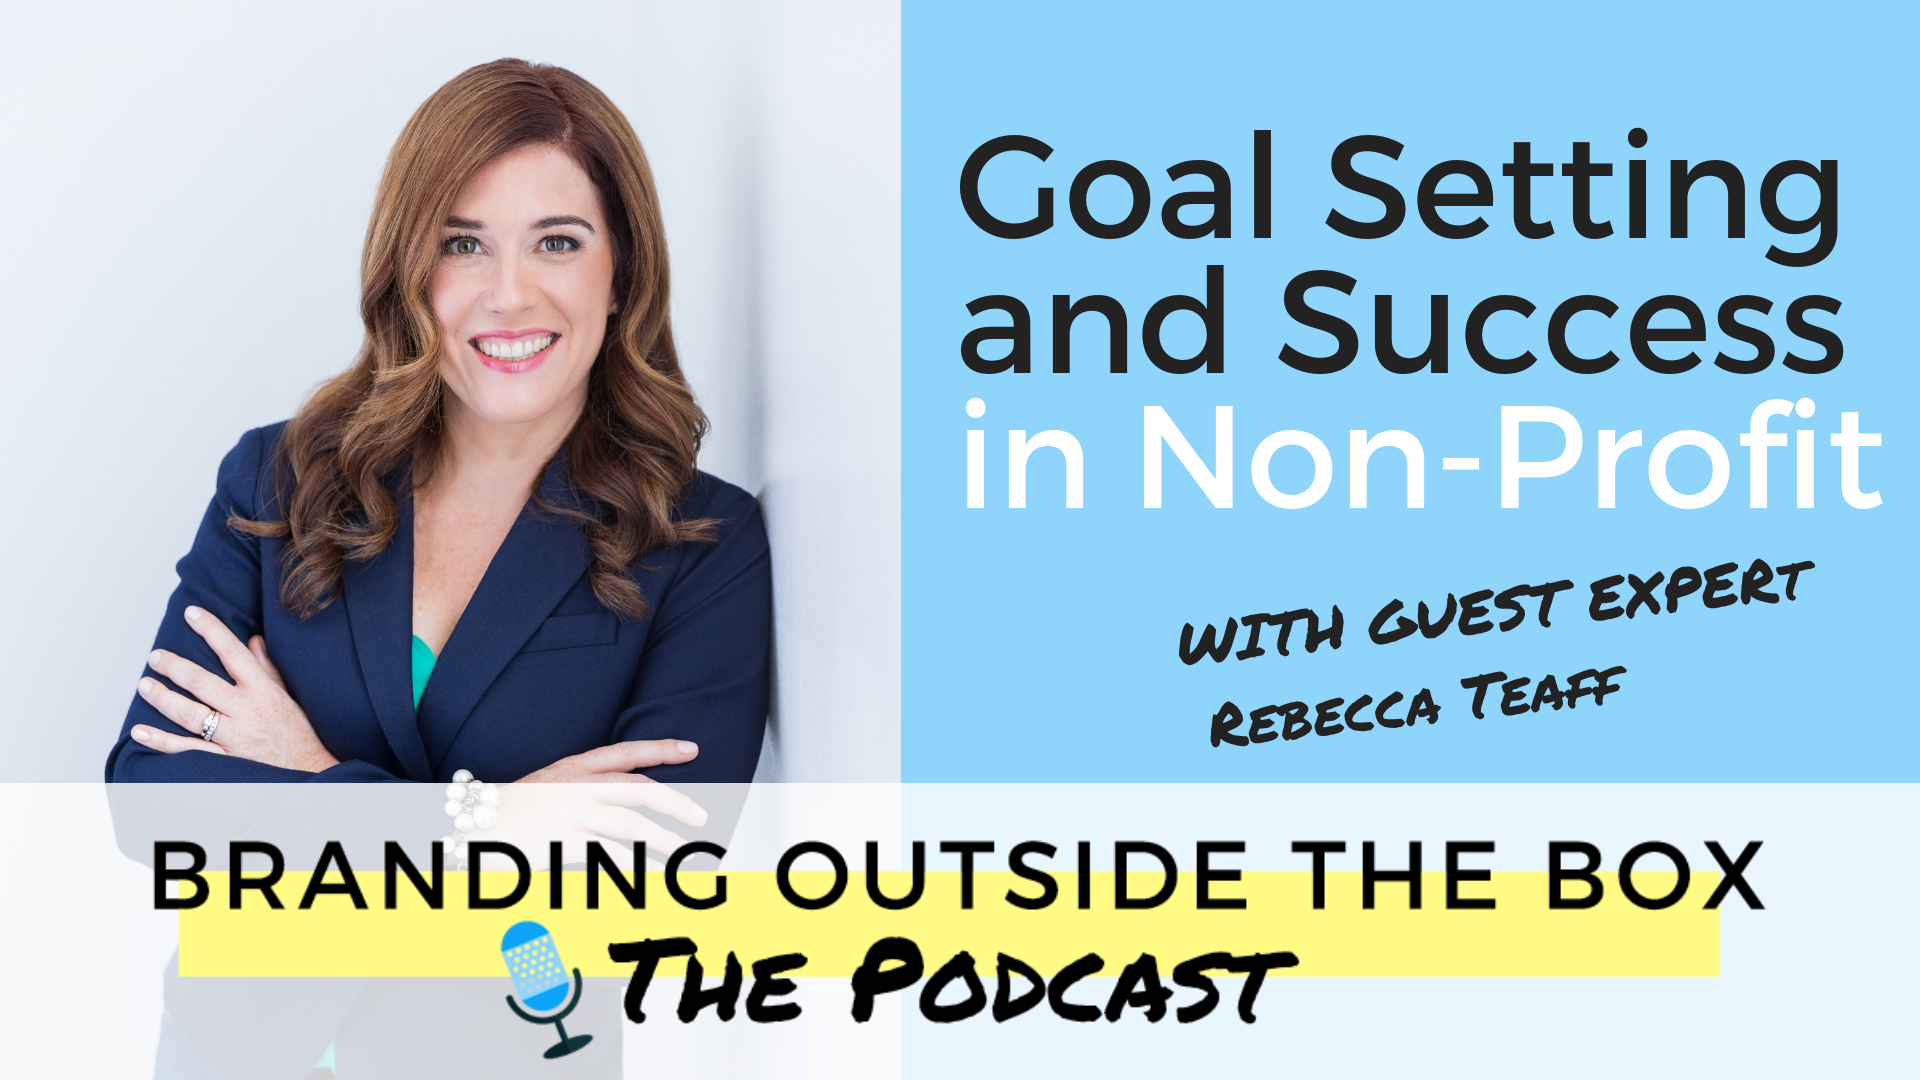 Goal Setting and Success in Non-Profit with Rebecca Teaff